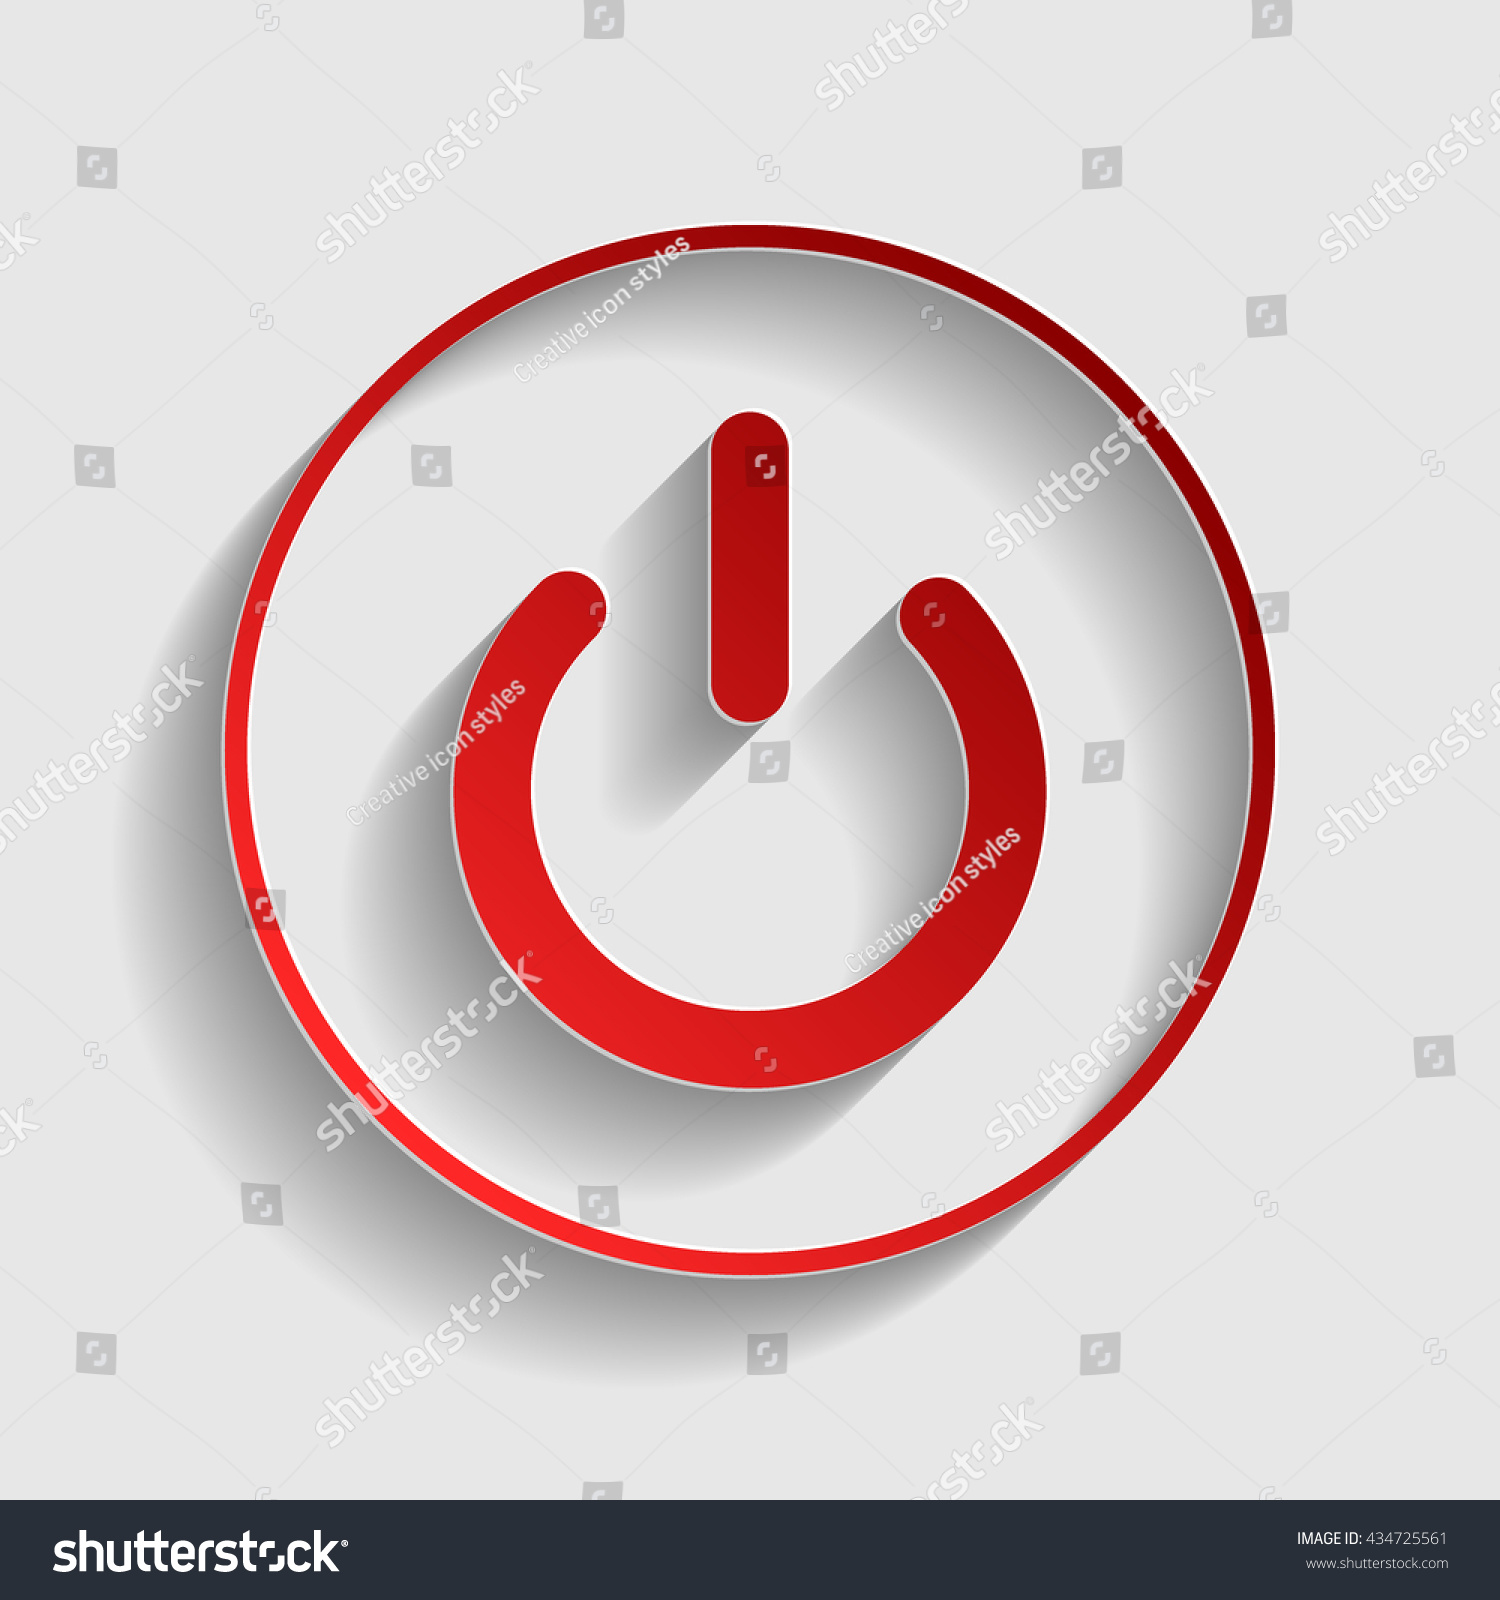 Stunning off on switch symbols pictures inspiration electrical magnificent electric switch on off symbols ideas electrical biocorpaavc Images